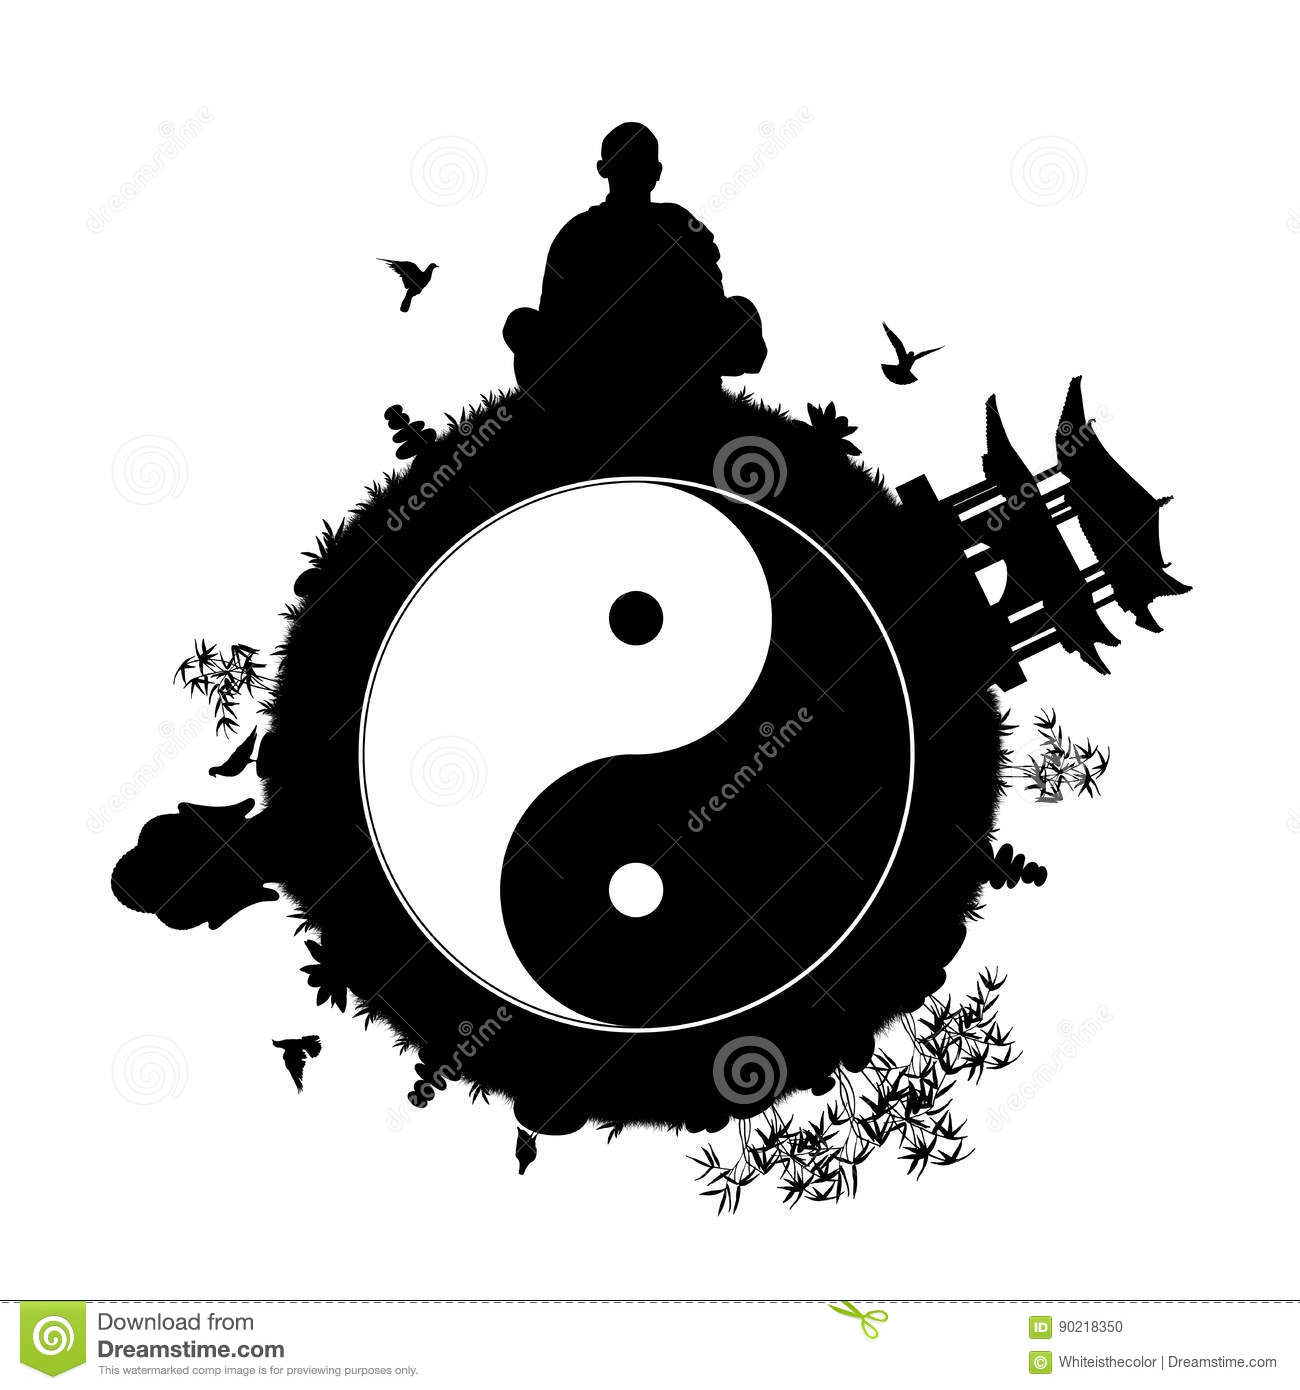 Peaceful planet with yin yang symbol stock illustration peaceful planet with yin yang symbol biocorpaavc Choice Image